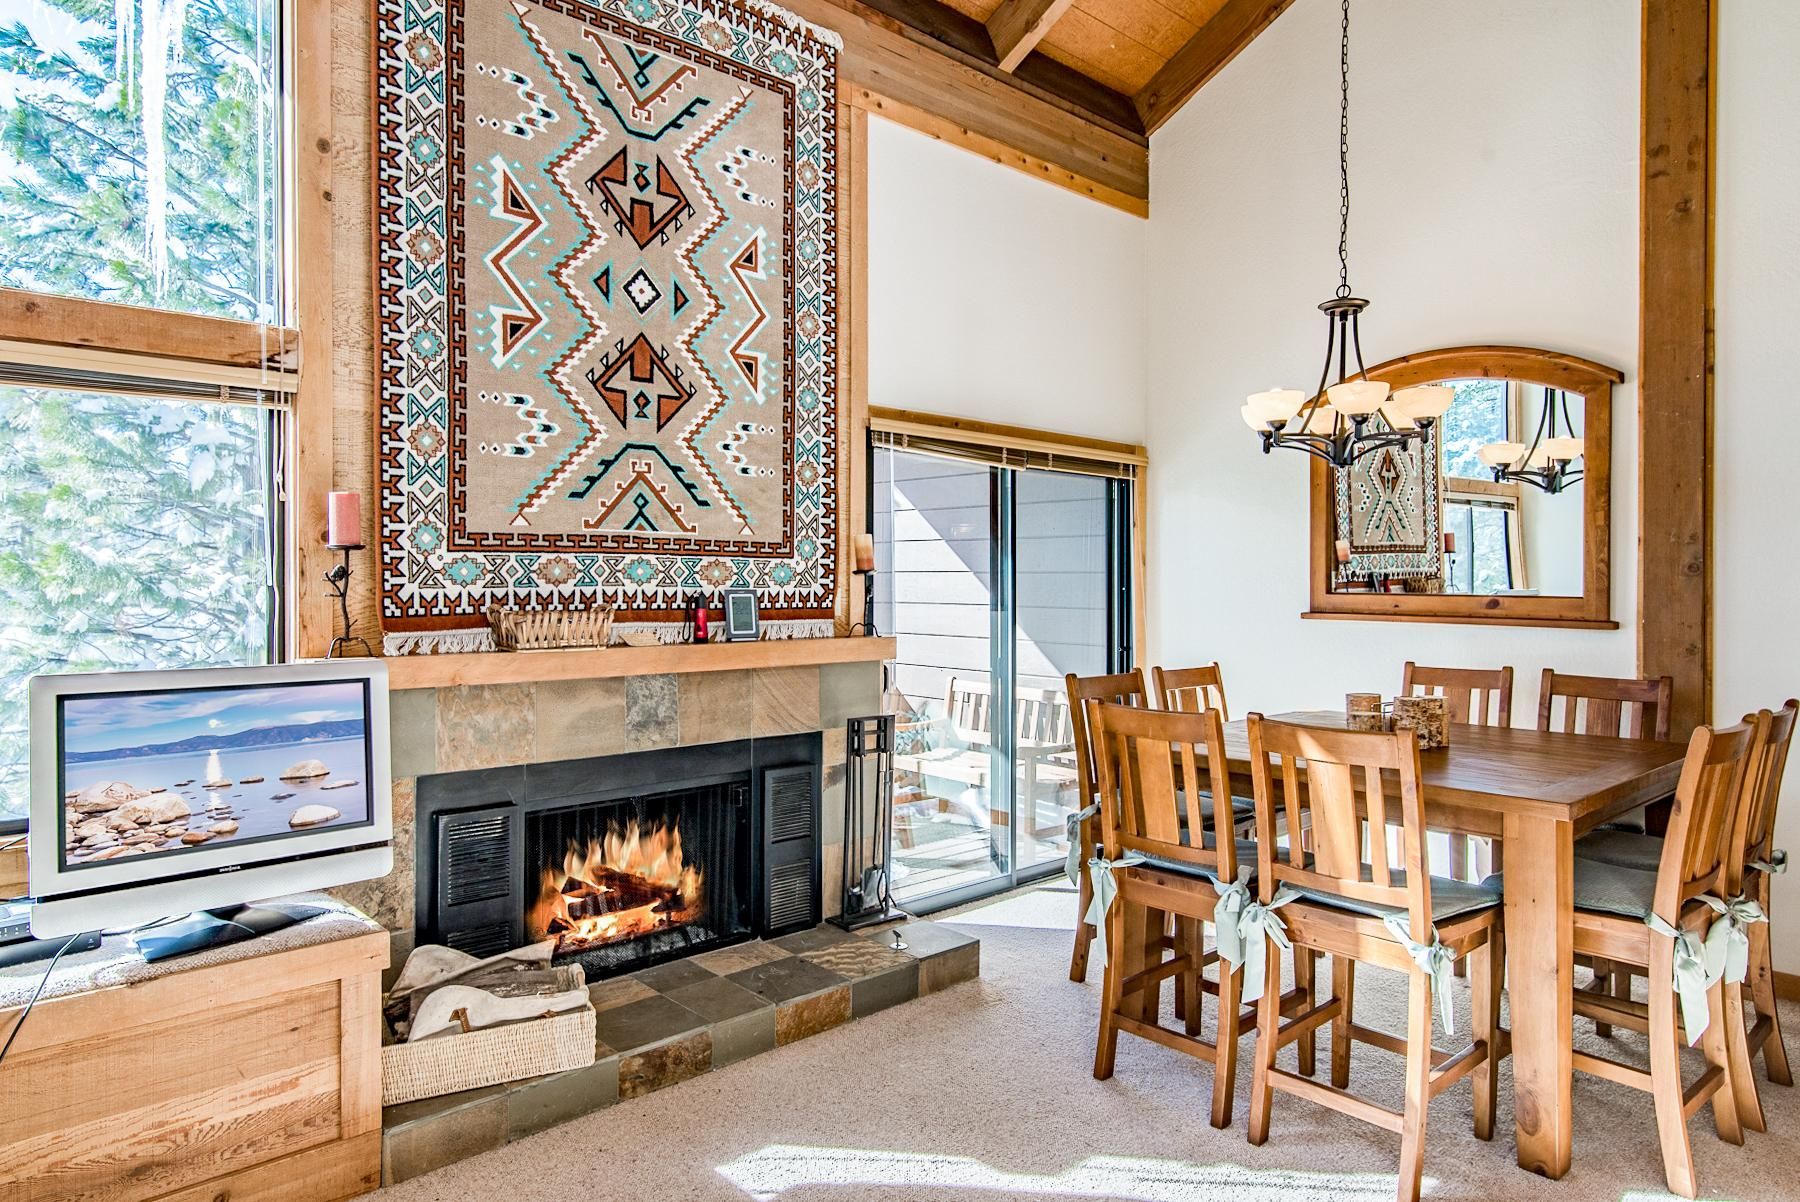 Enjoy a bite to eat next to the flickering fireplace.